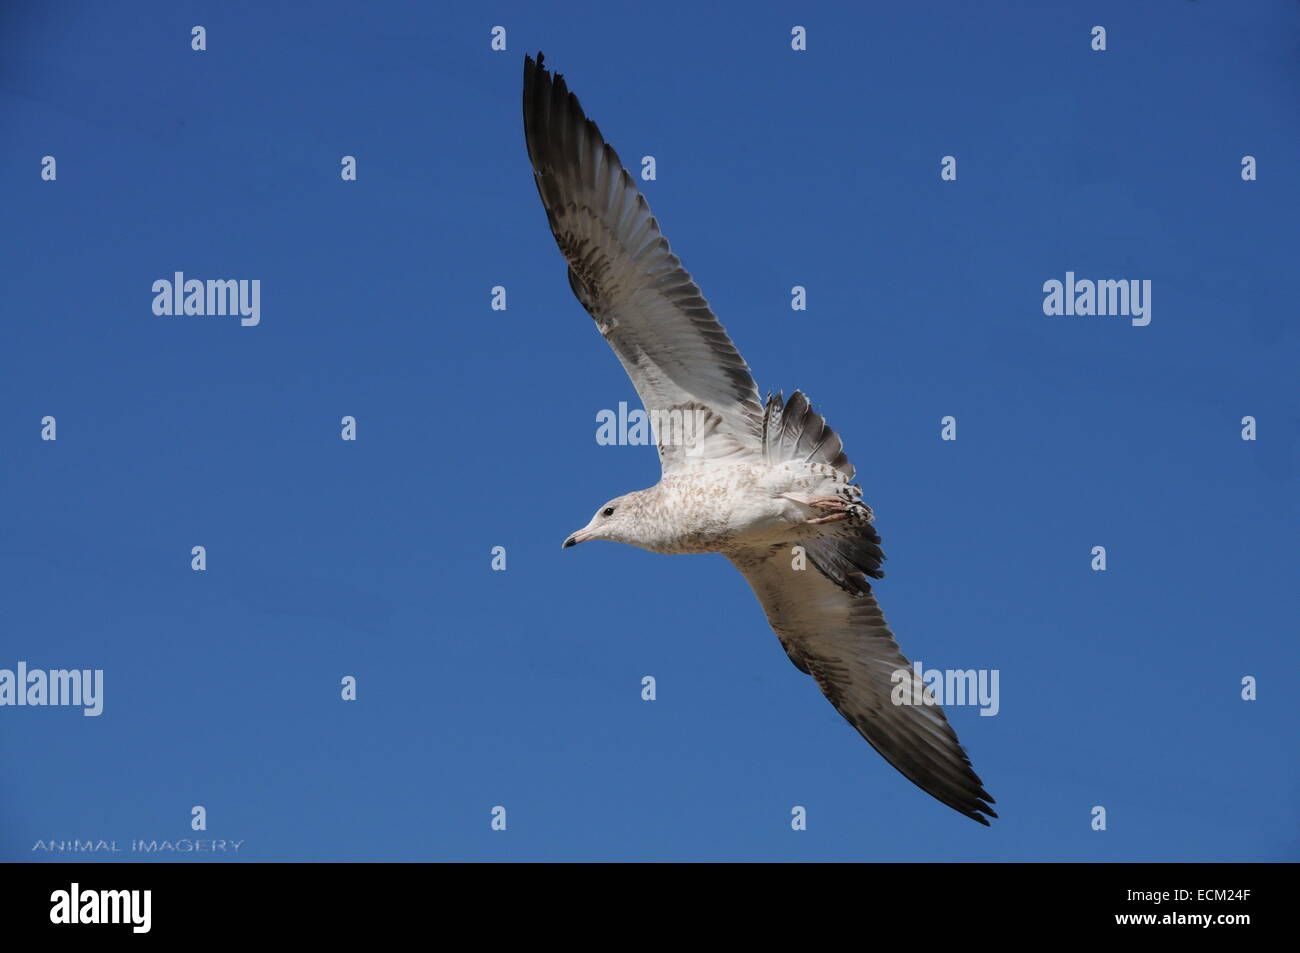 Seagull with wings fully extended. Bright blue sky. - Stock Image